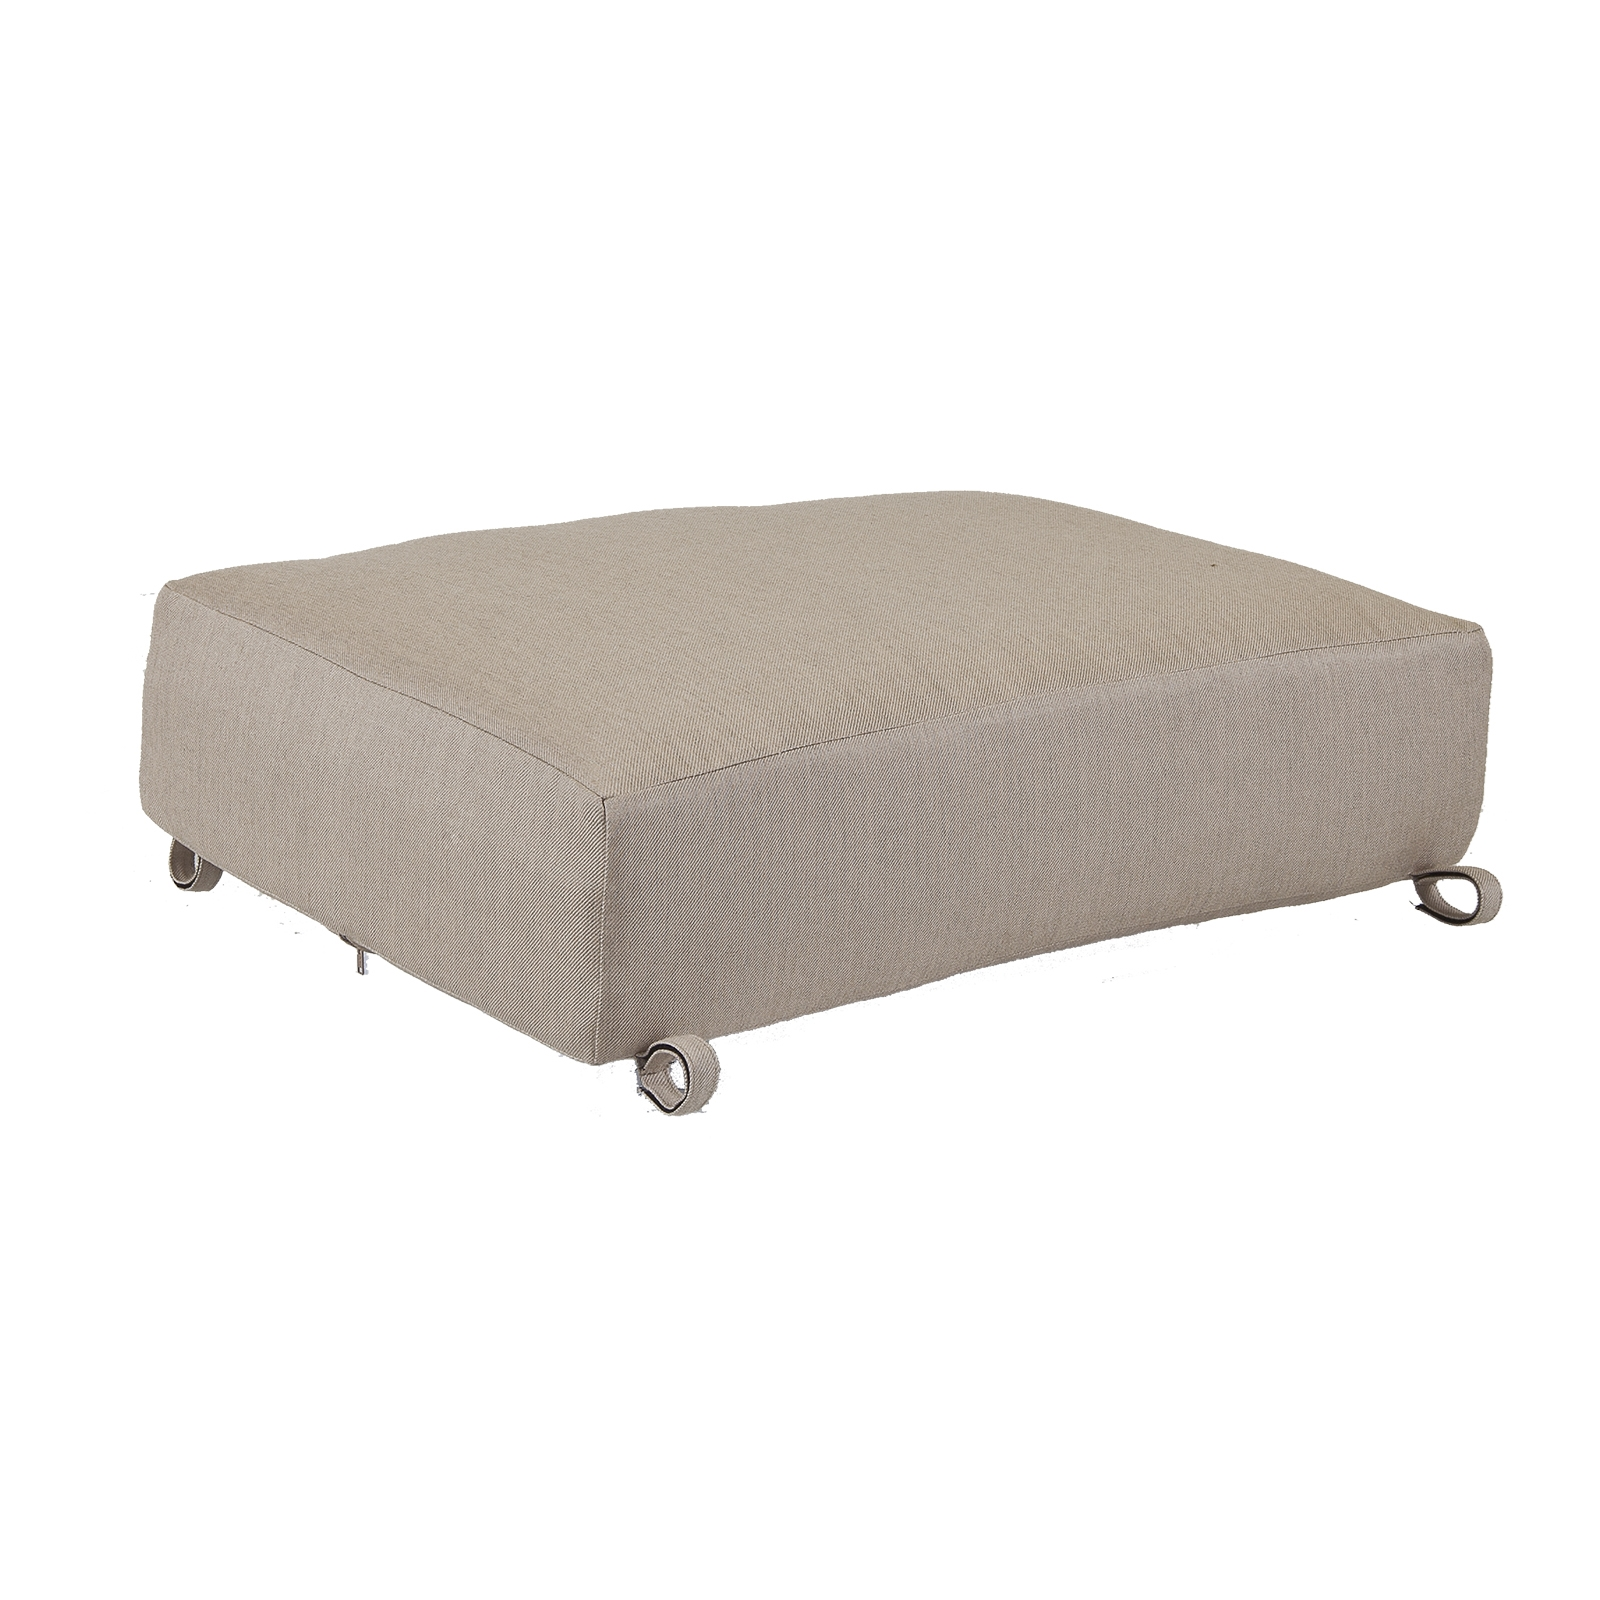 OW Lee Aris Ottoman Replacement Cushion - OW170-O